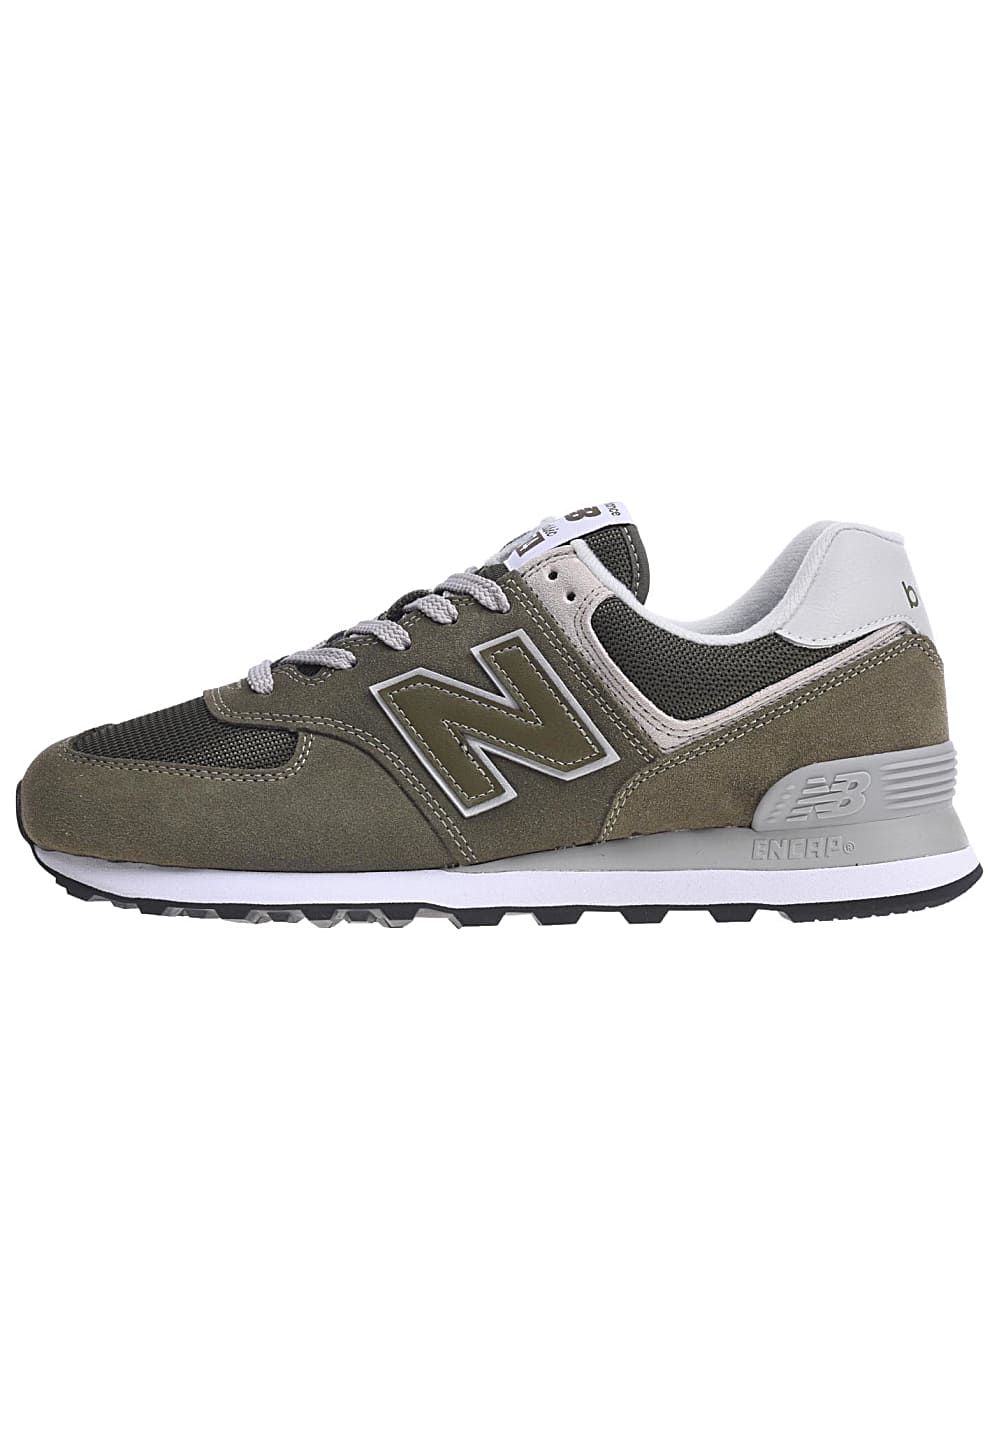 best service 29164 17e24 NEW BALANCE ML574 D - Sneakers for Men - Green